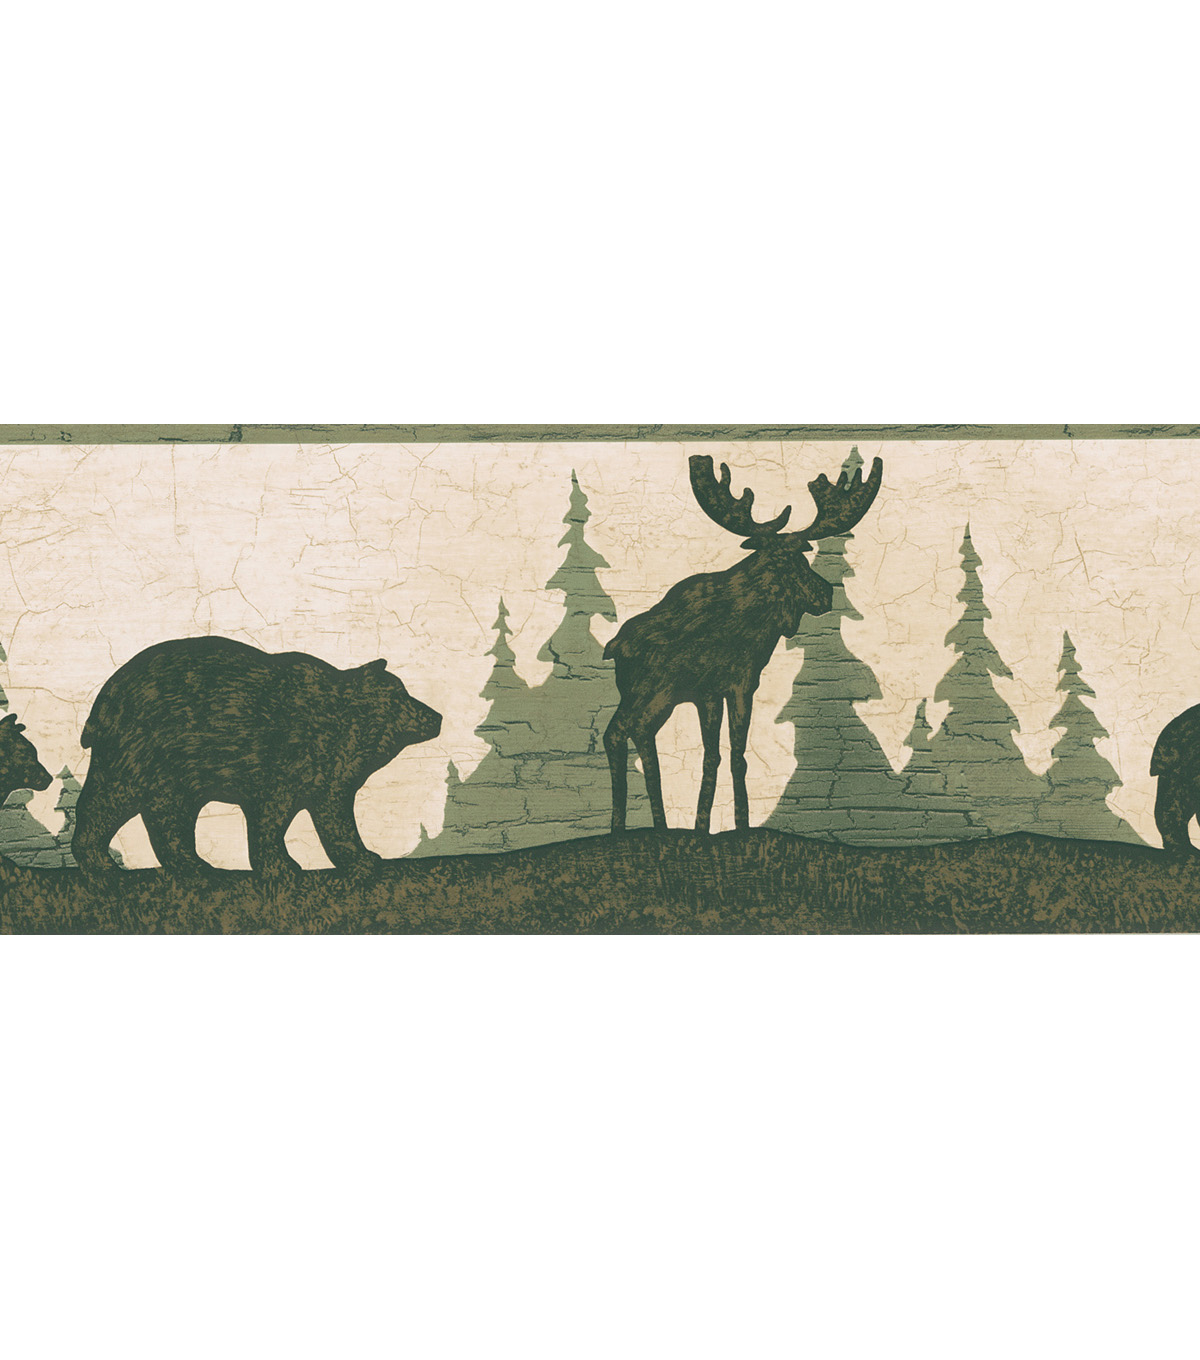 Woods Green Bear And Moose Silhouette Wallpaper Border Sample Jo Ann 1200x1360